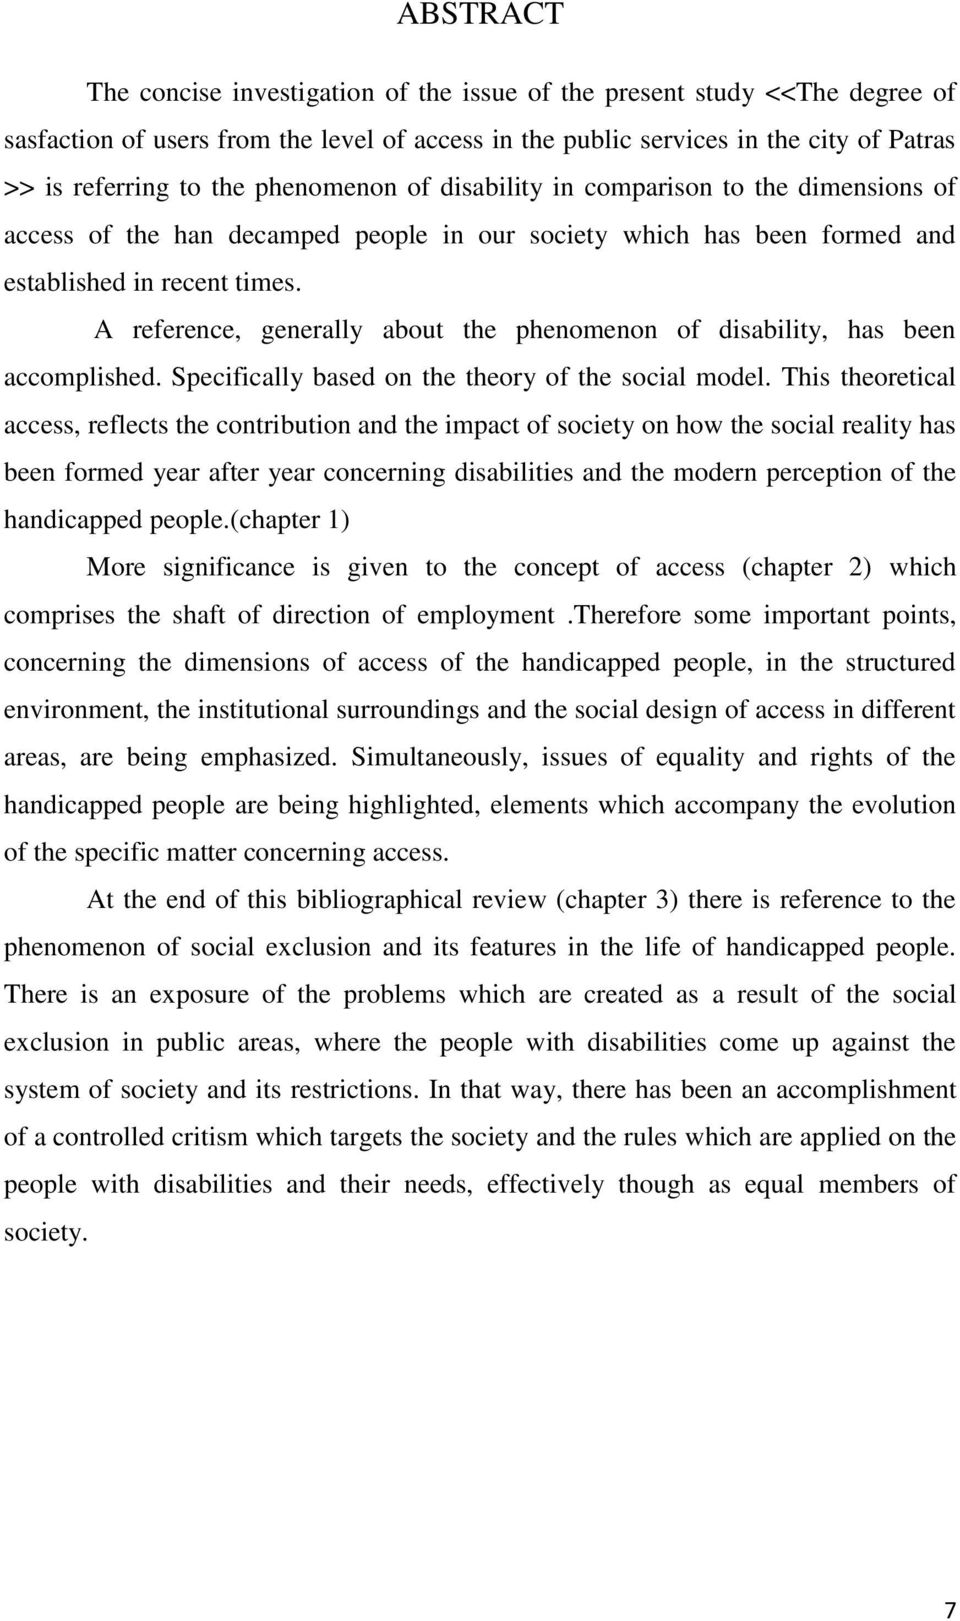 A reference, generally about the phenomenon of disability, has been accomplished. Specifically based on the theory of the social model.